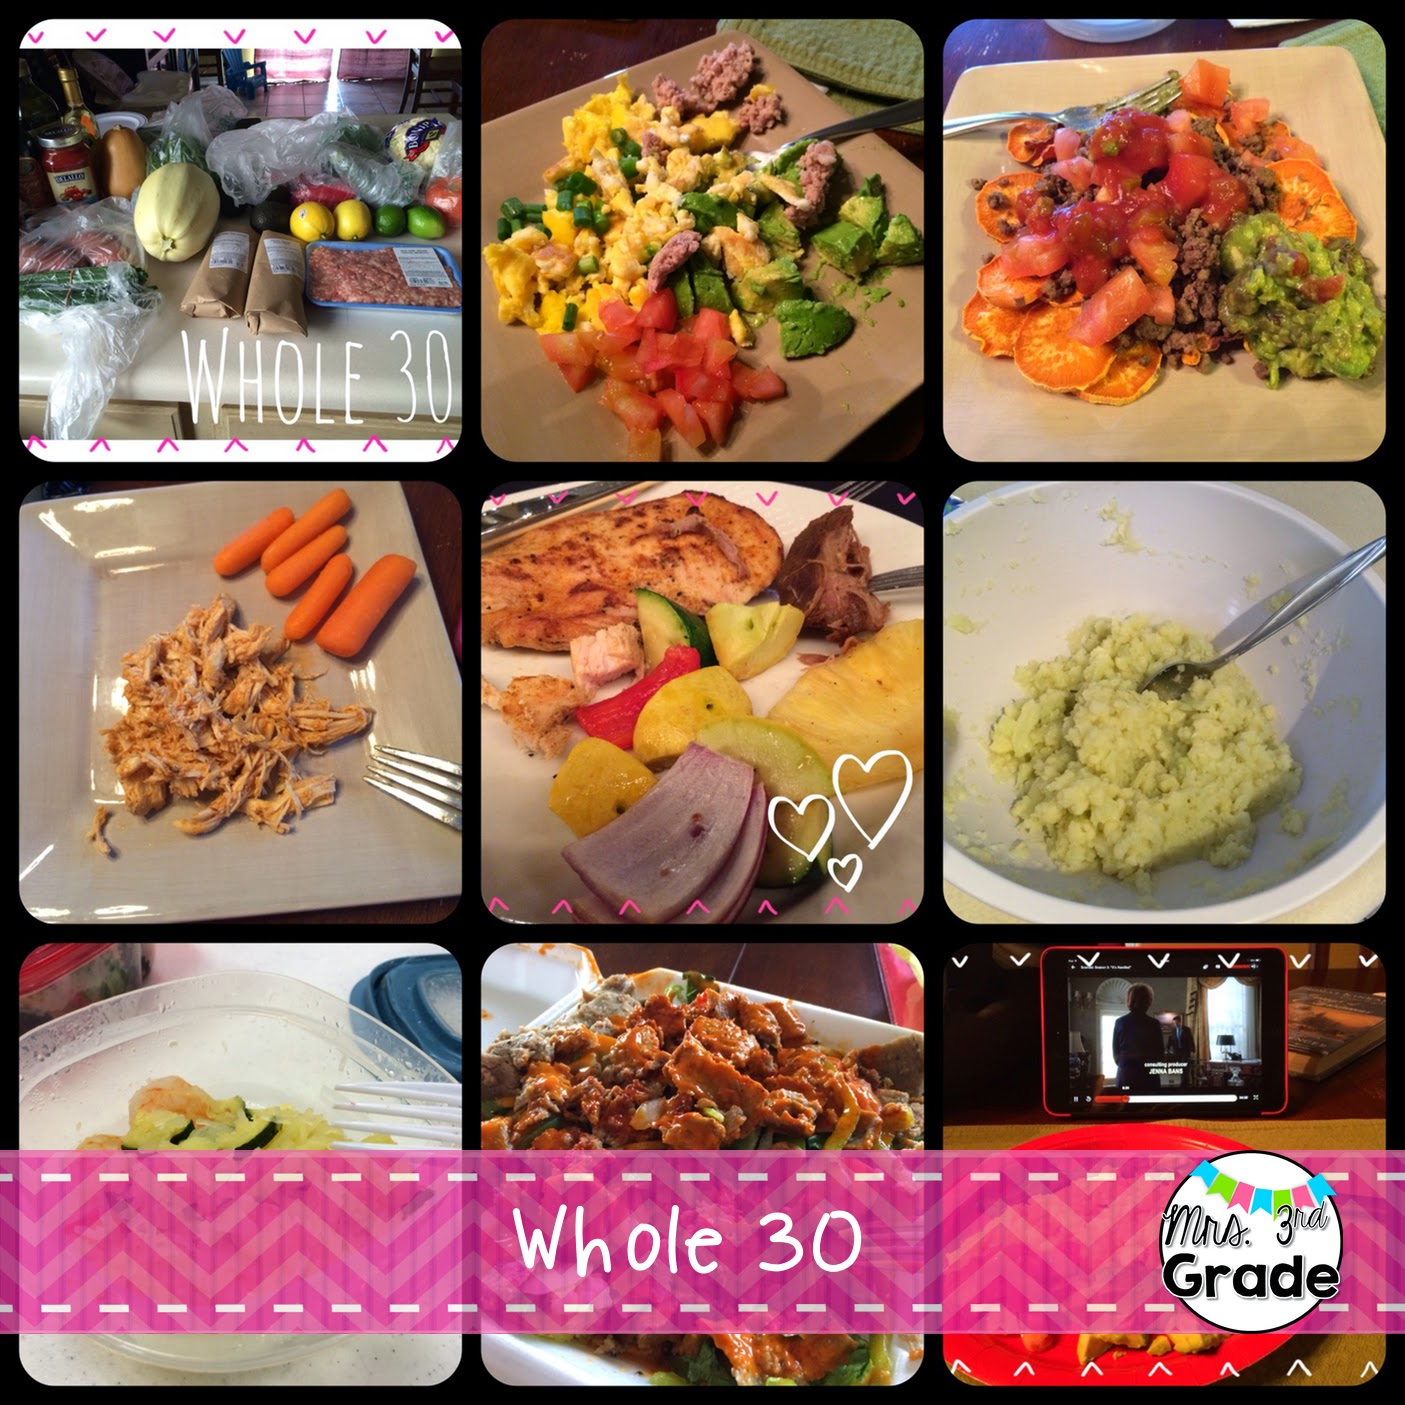 Whole 30 food for me!  Whole 30 is a great way to feel better, and eat healthy!